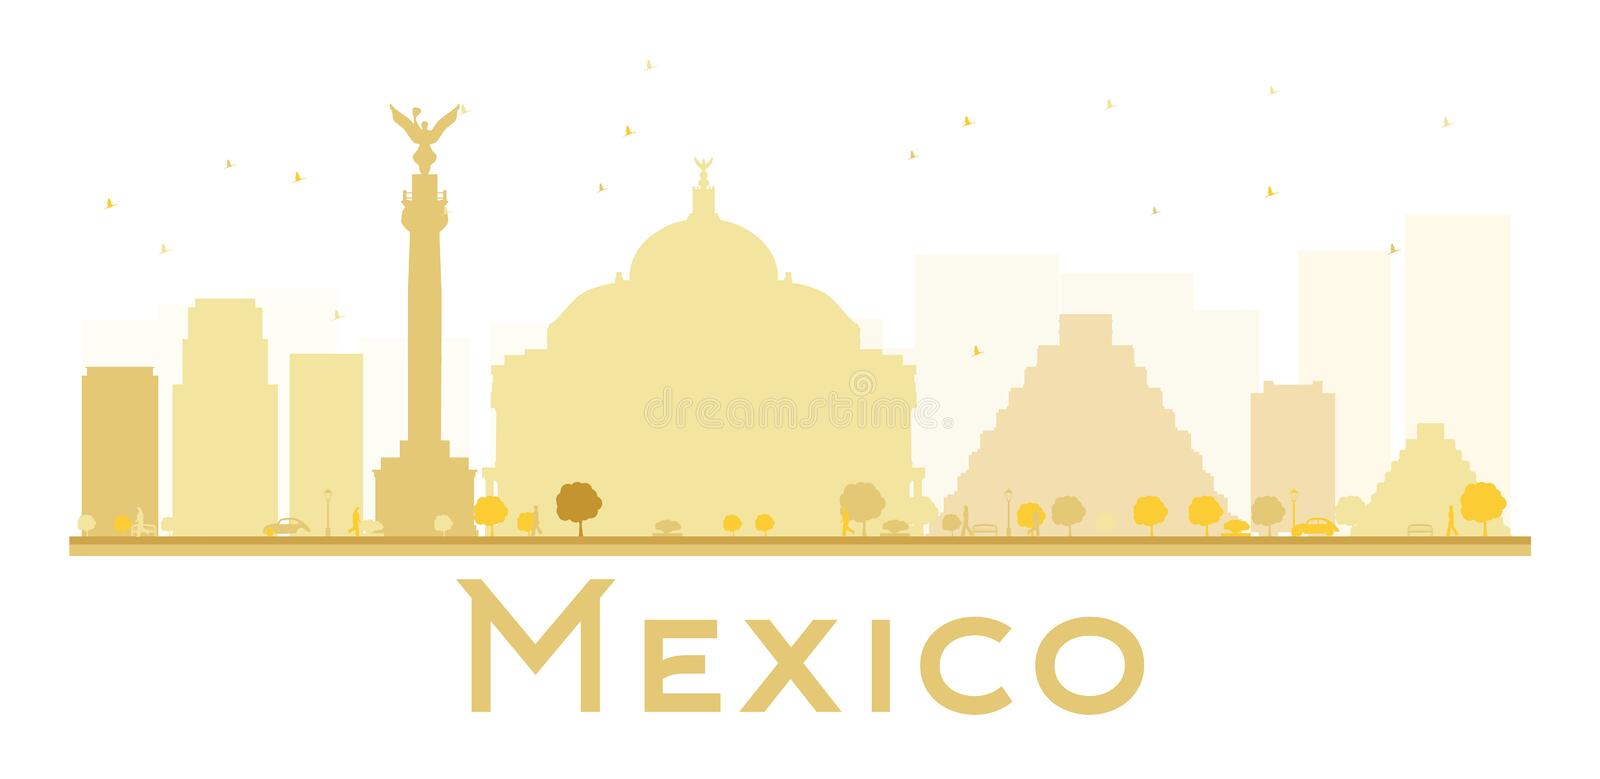 Mexico City skyline golden silhouette. Vector illustration. Simple flat concept for tourism presentation, banner, placard or web site. Business travel concept royalty free illustration